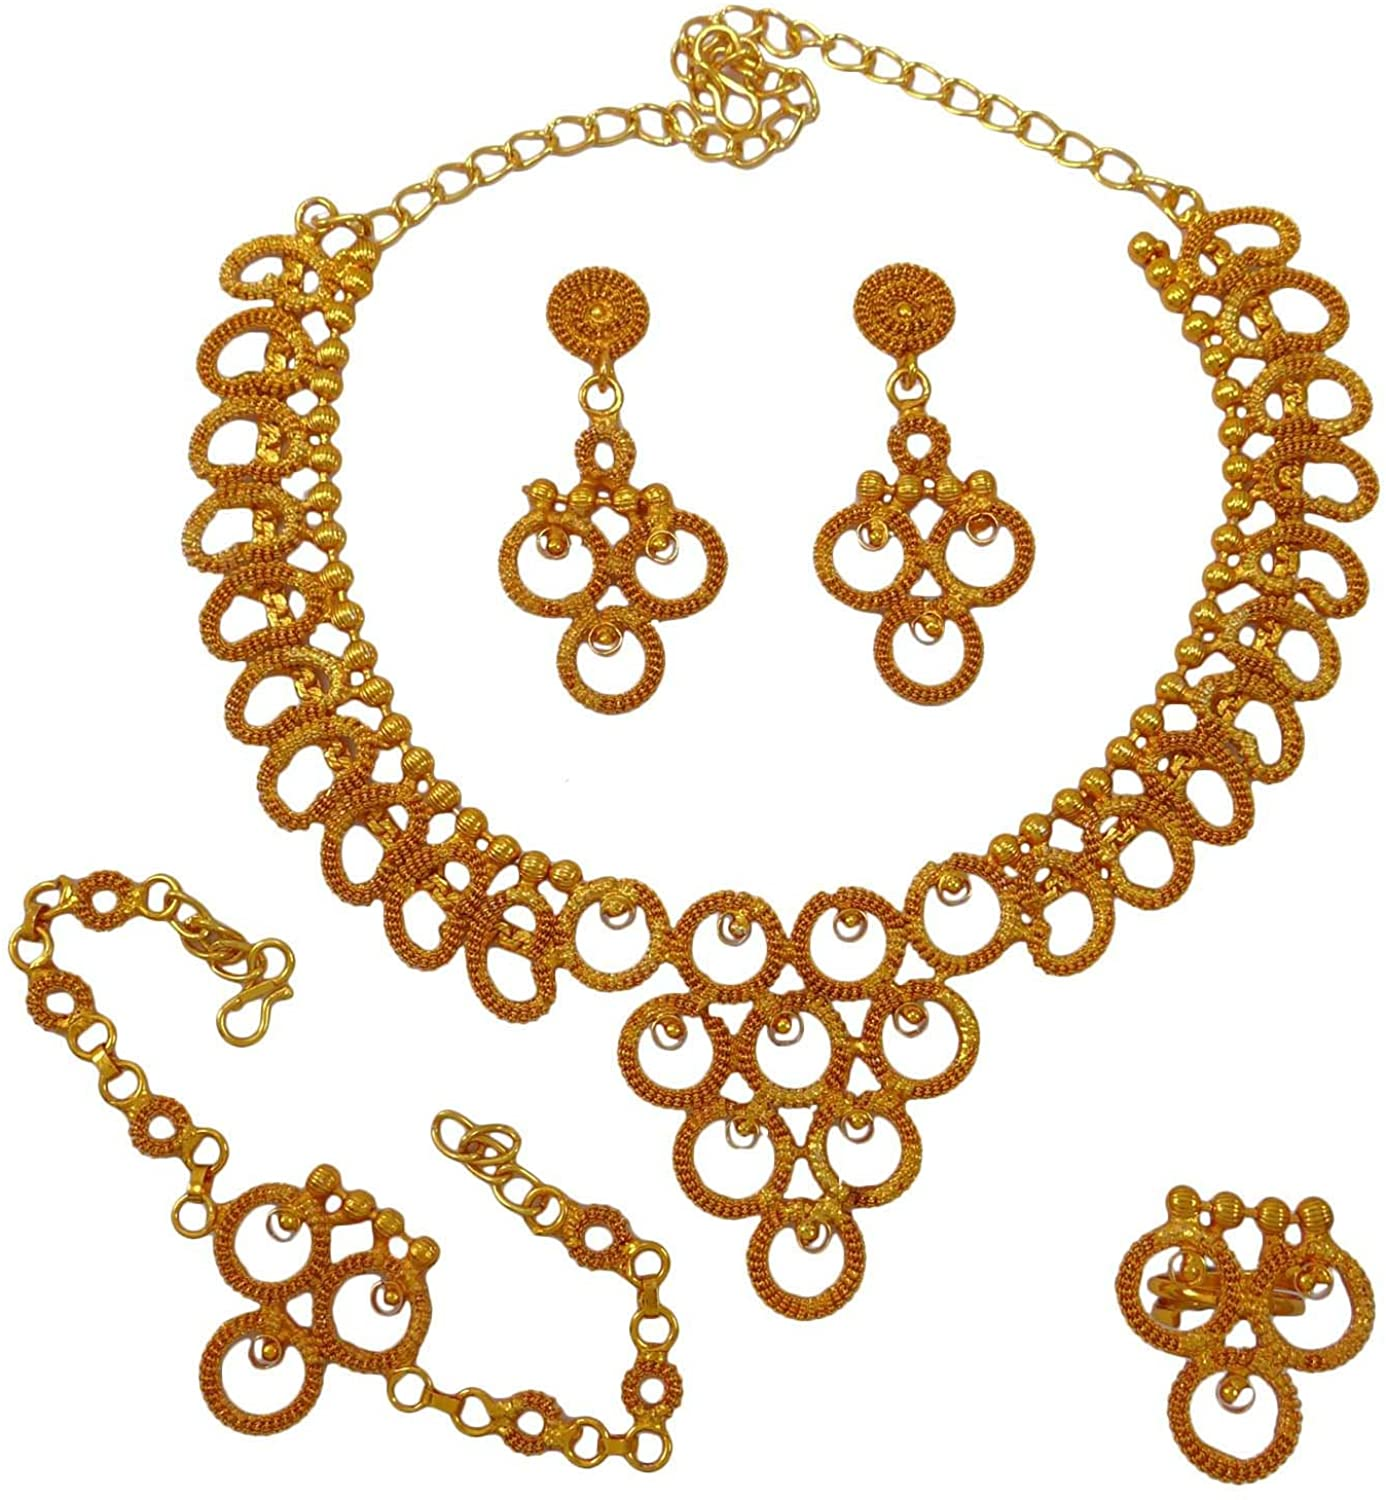 Banithani Indian Gold Plated Traditional Necklace Earring Set Jewelry Gift for Women